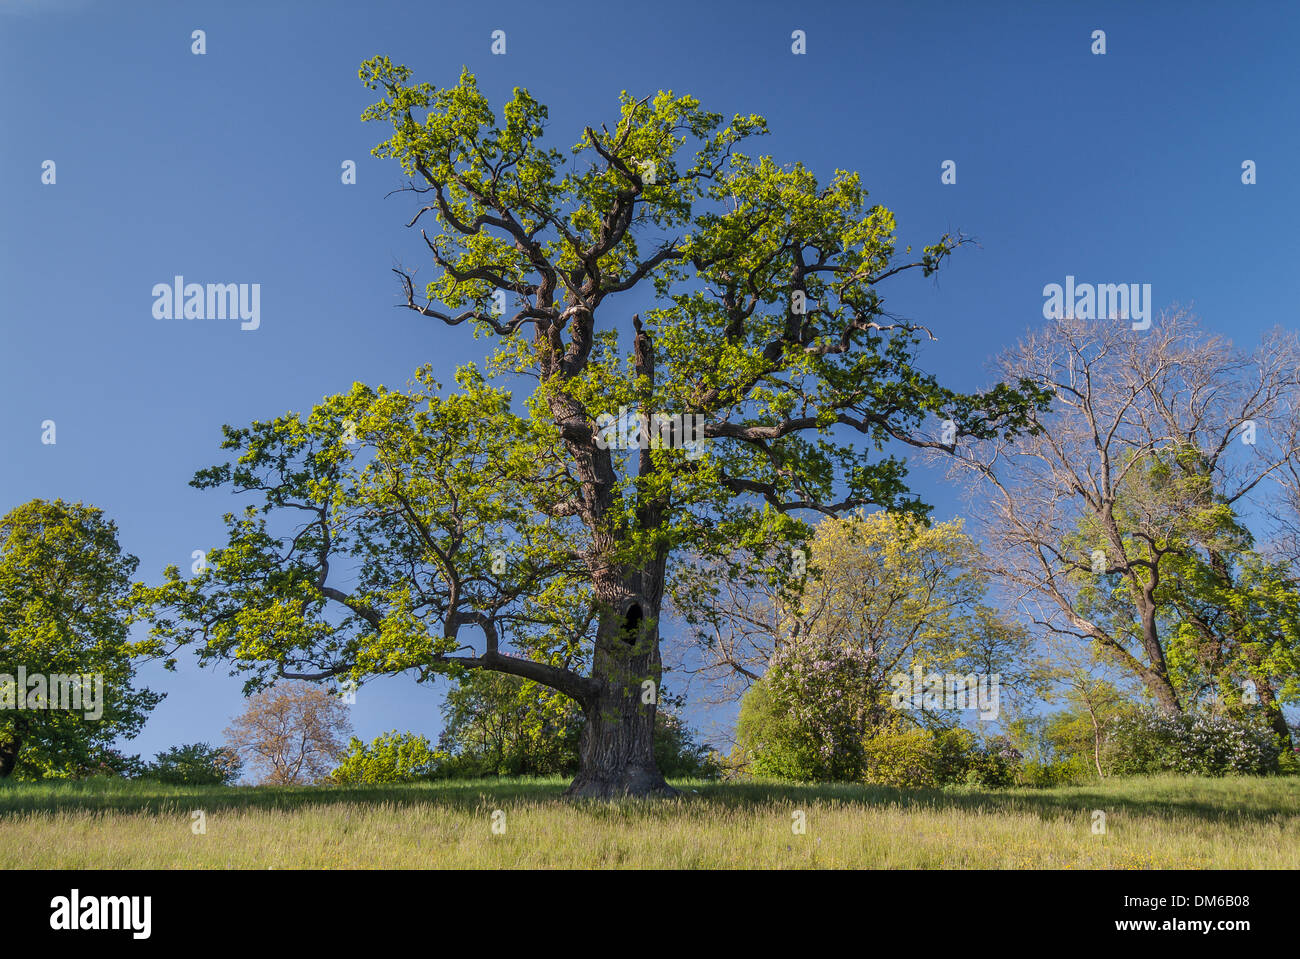 Old Pedunculate Oak tree (Quercus robur) in the landscaped park of Schloss Ettersburg Castle, Weimar, Thuringia, - Stock Image